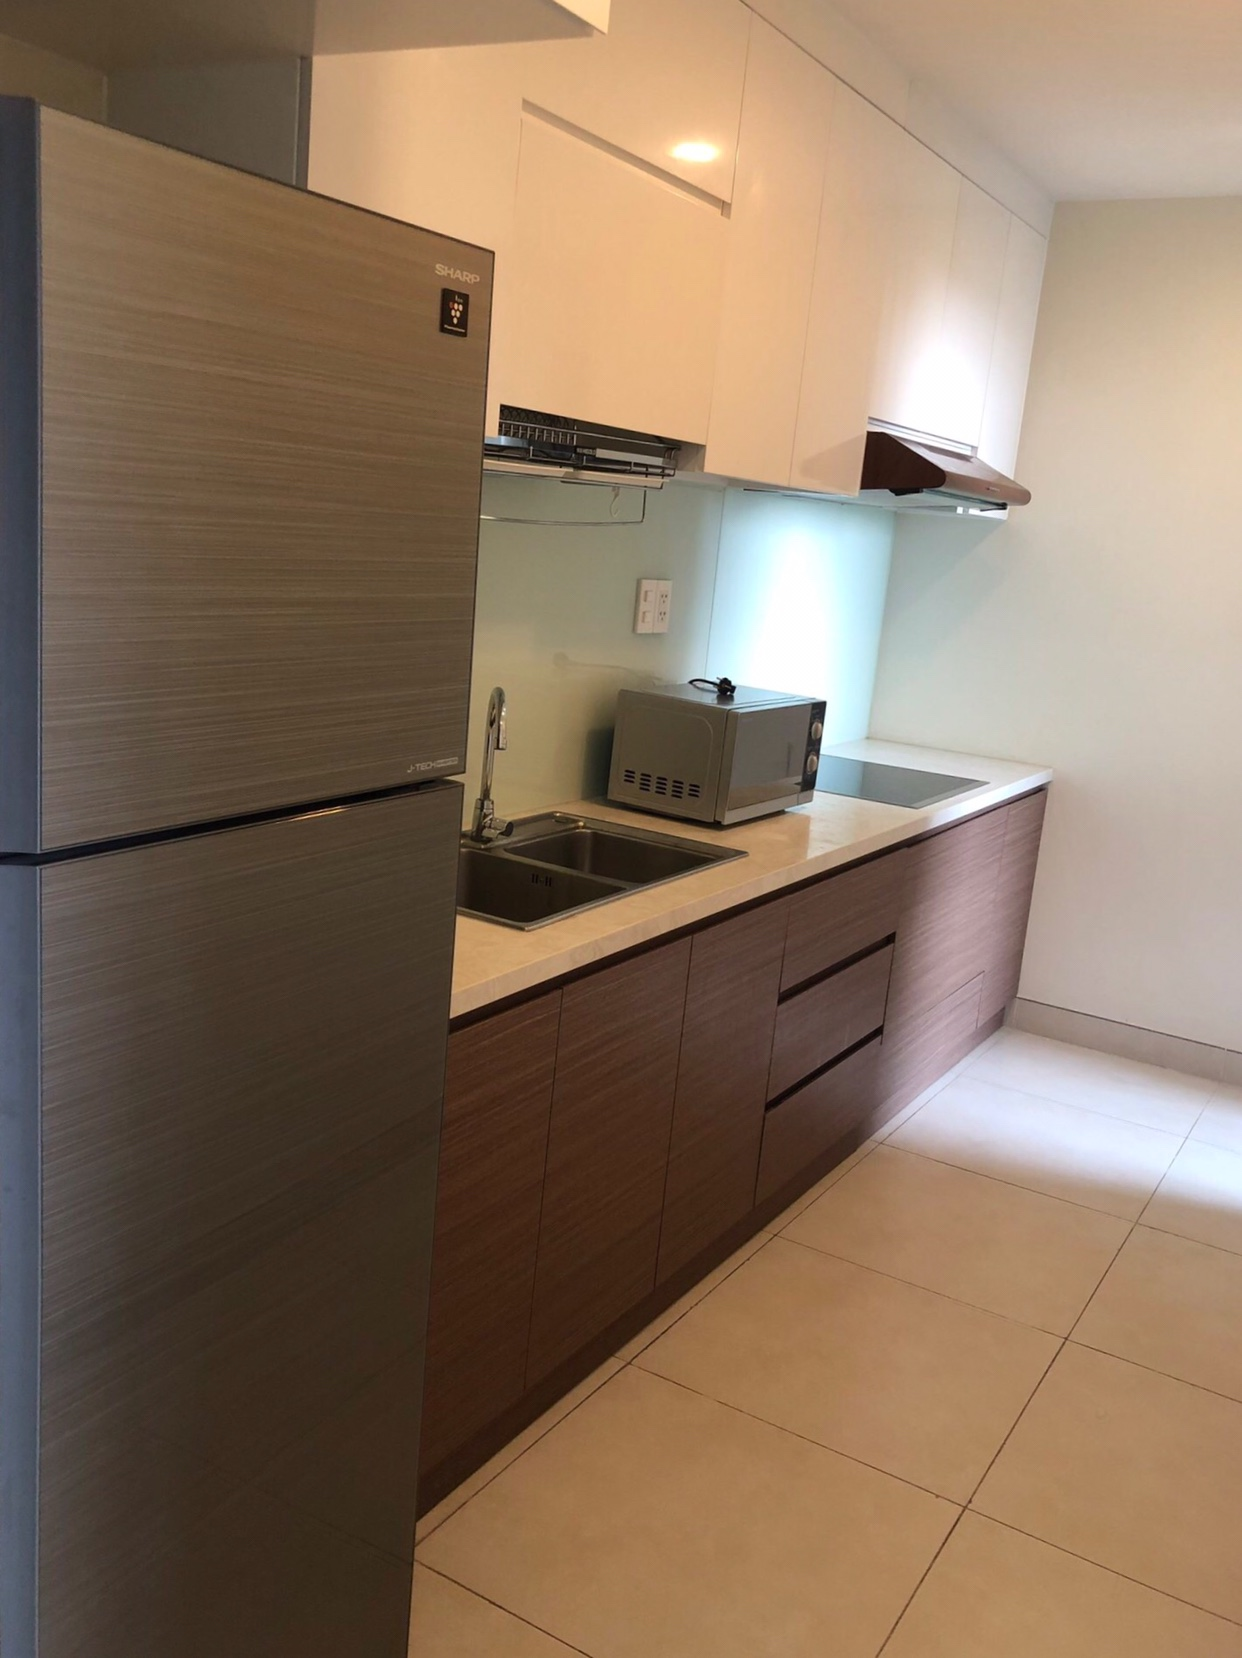 Apartment for rent D2144573 (12)